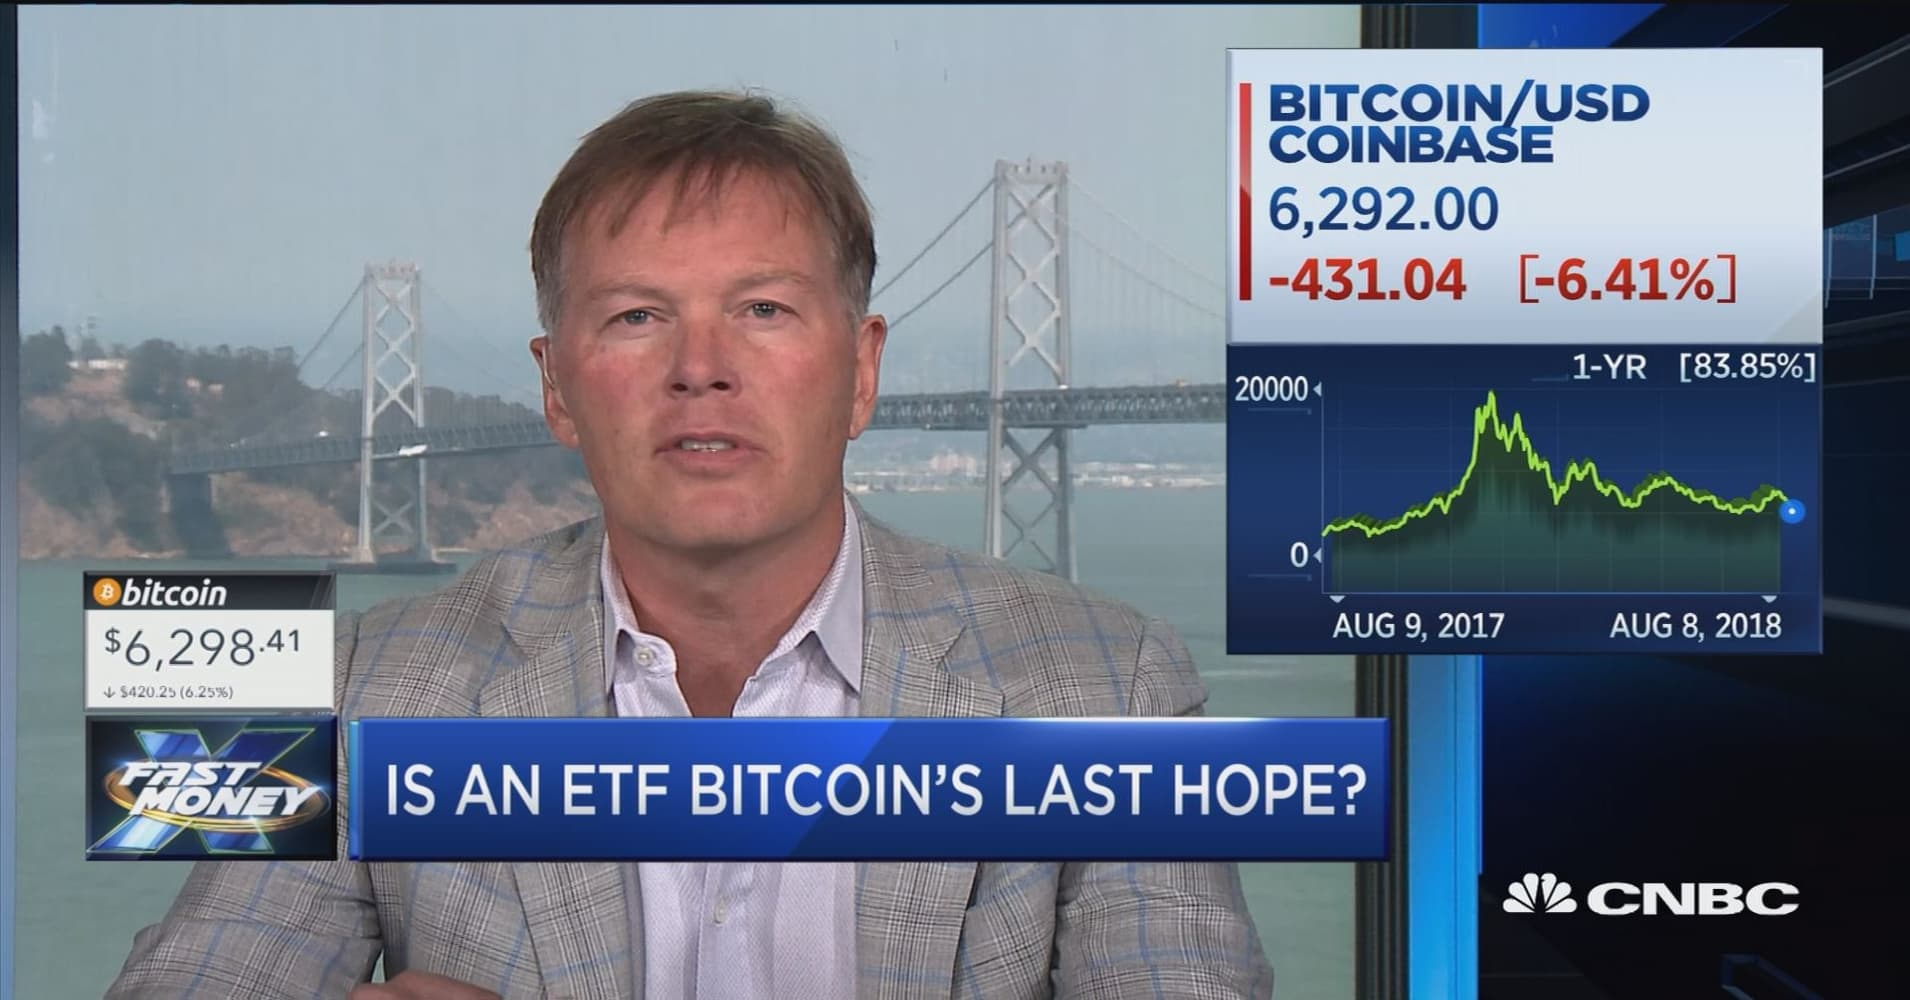 Does bitcoin need an ETF to make a comeback? Crypto hedge fund manager weighs in